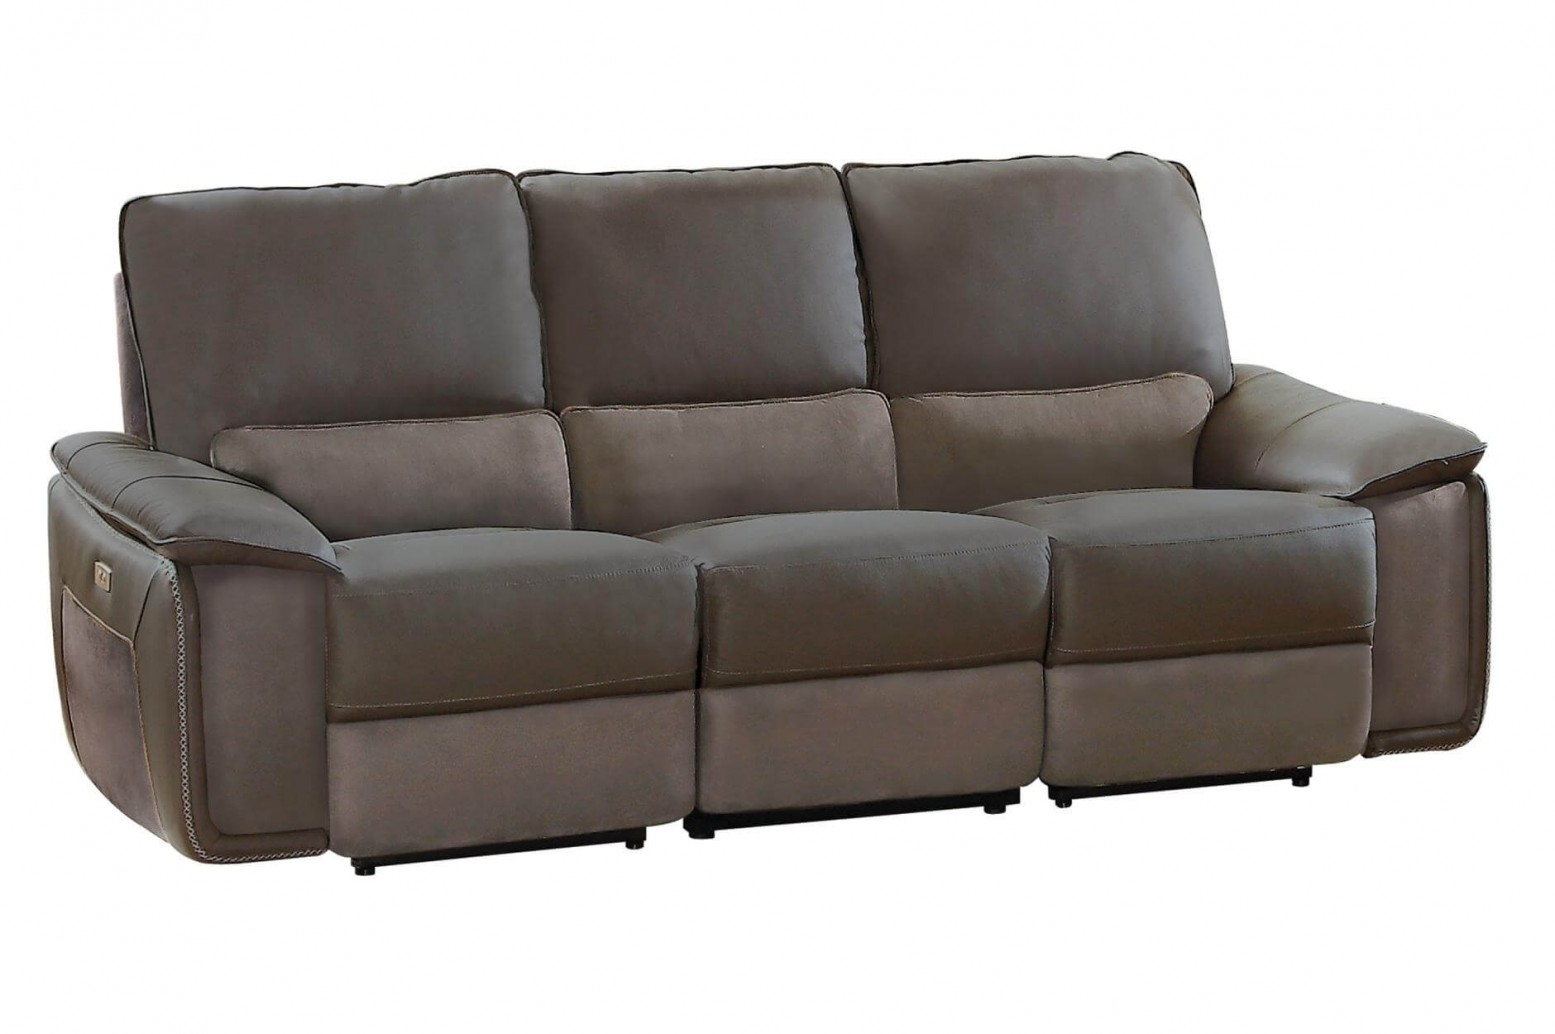 Superb Corazon Leather Fabric Power Double Reclining Sofa Download Free Architecture Designs Scobabritishbridgeorg